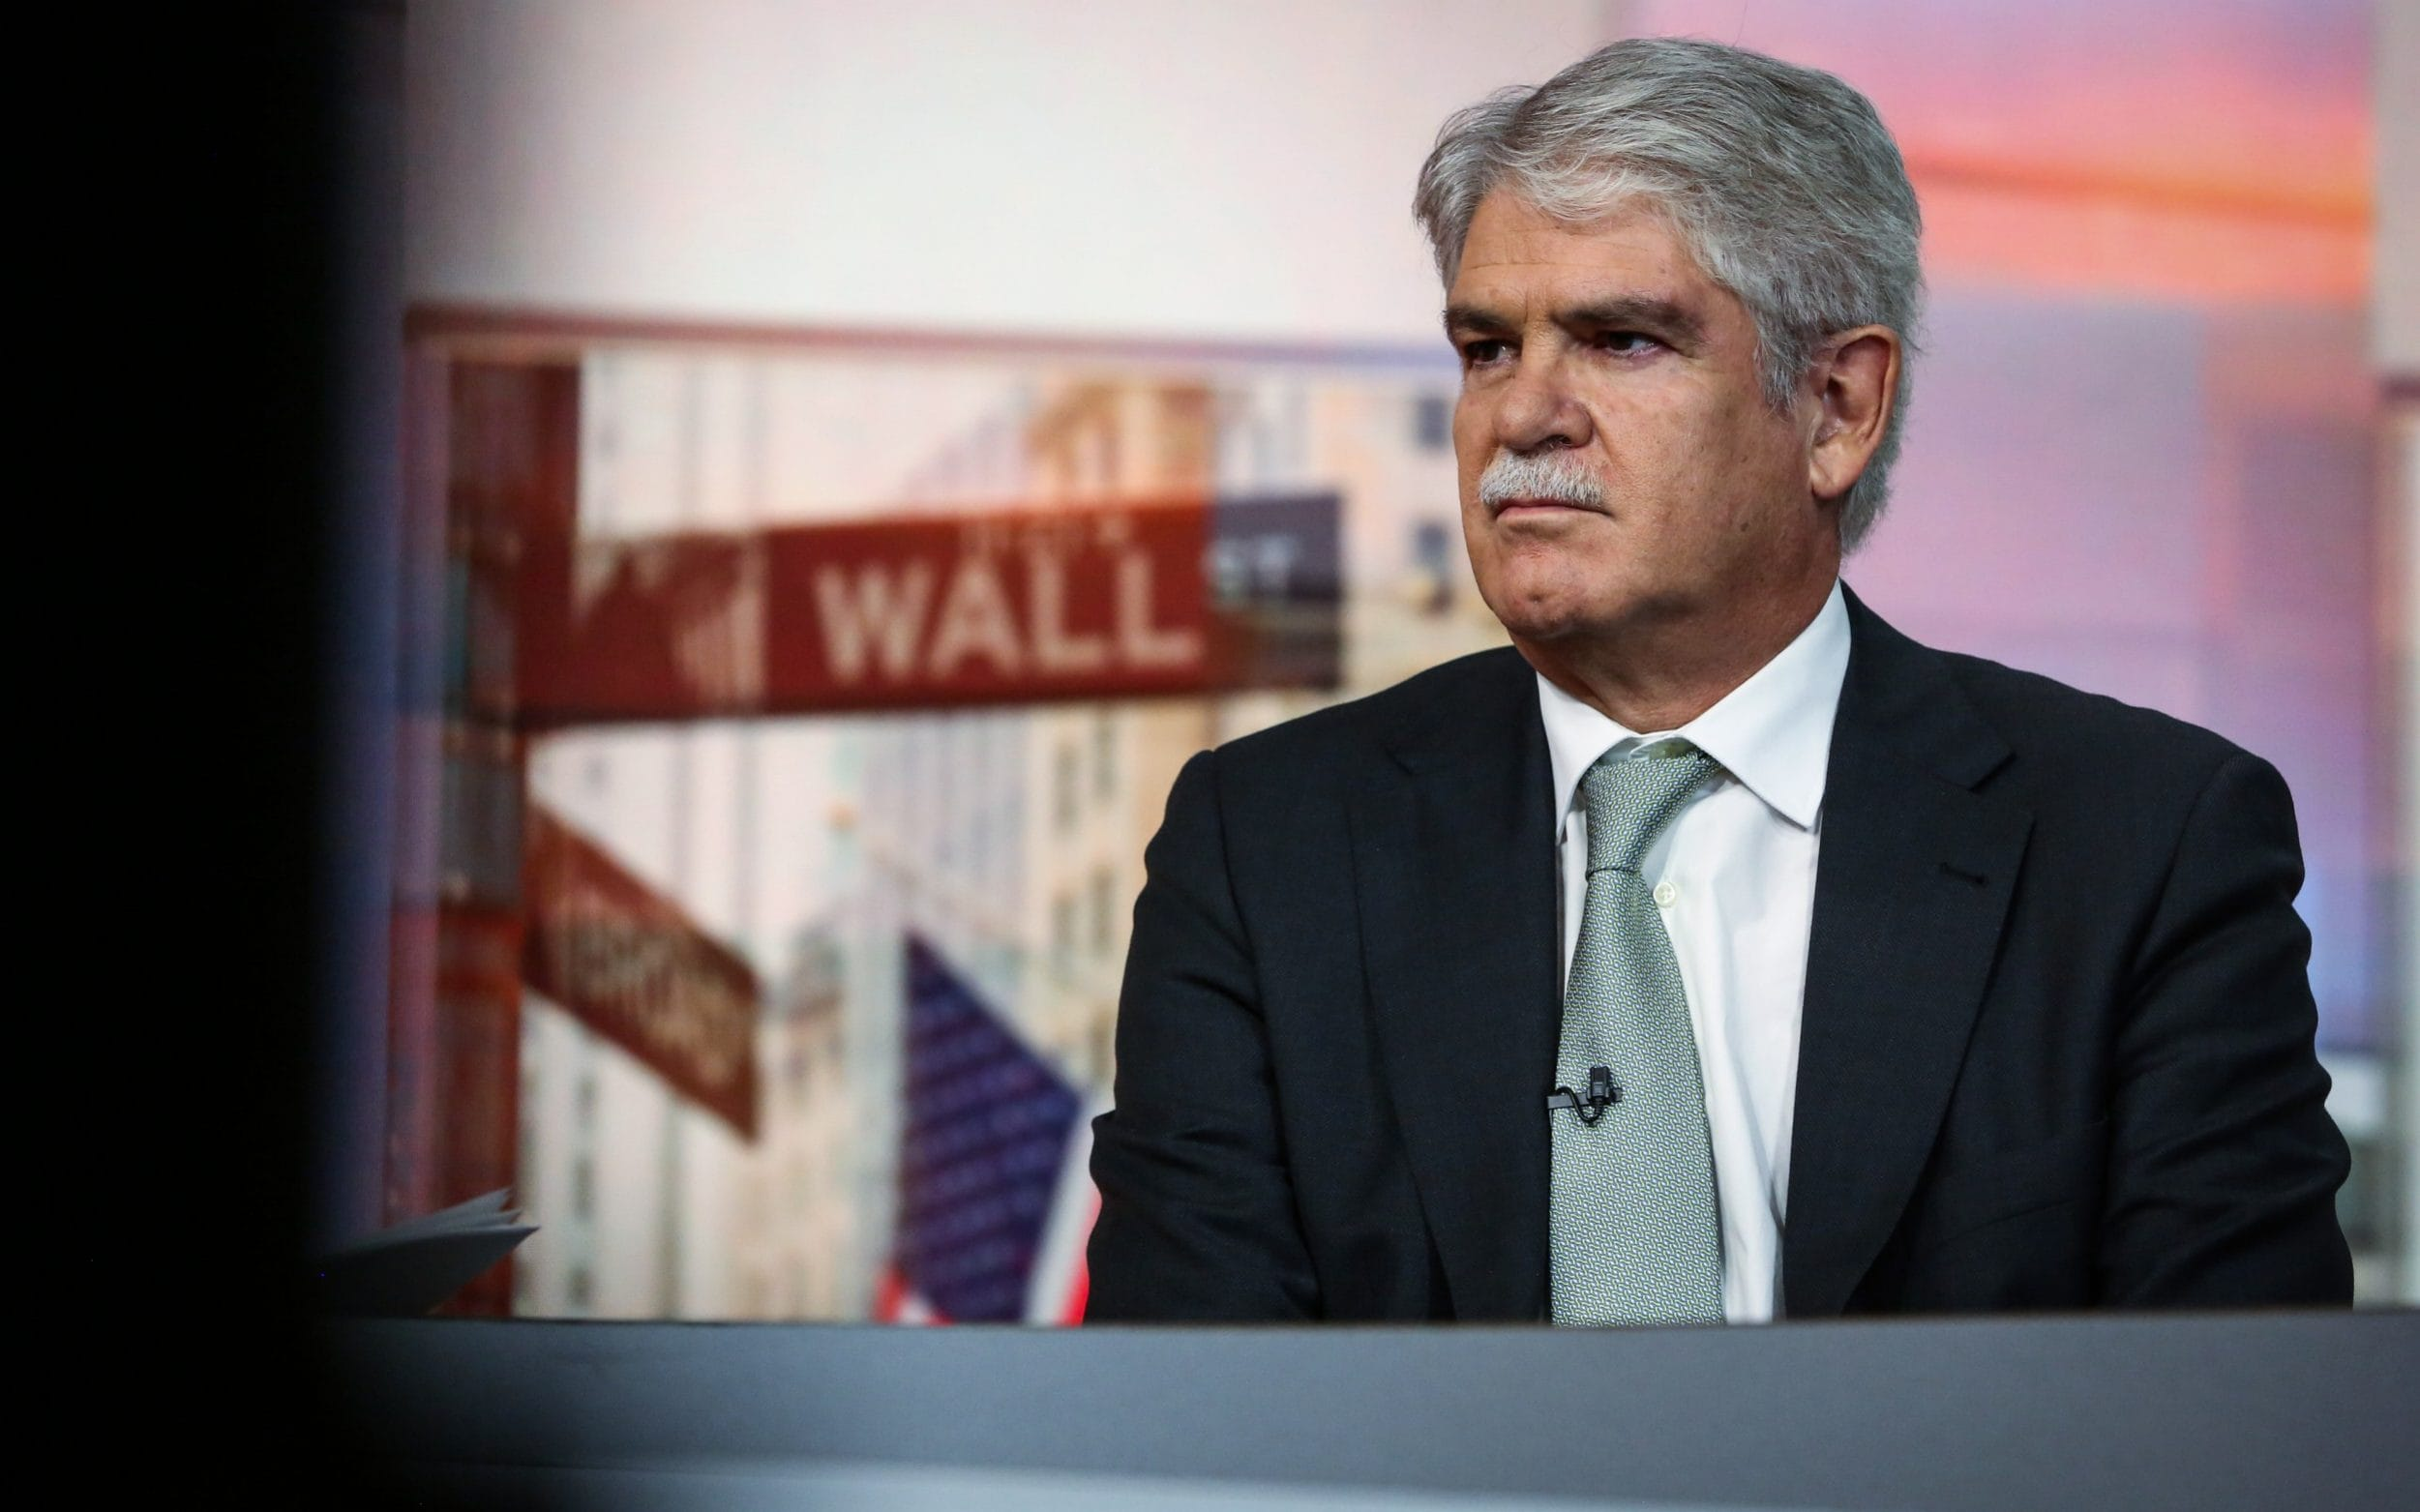 Spanish Foreign Affairs Minister Alfonso Dastis said Catalan separatists are using